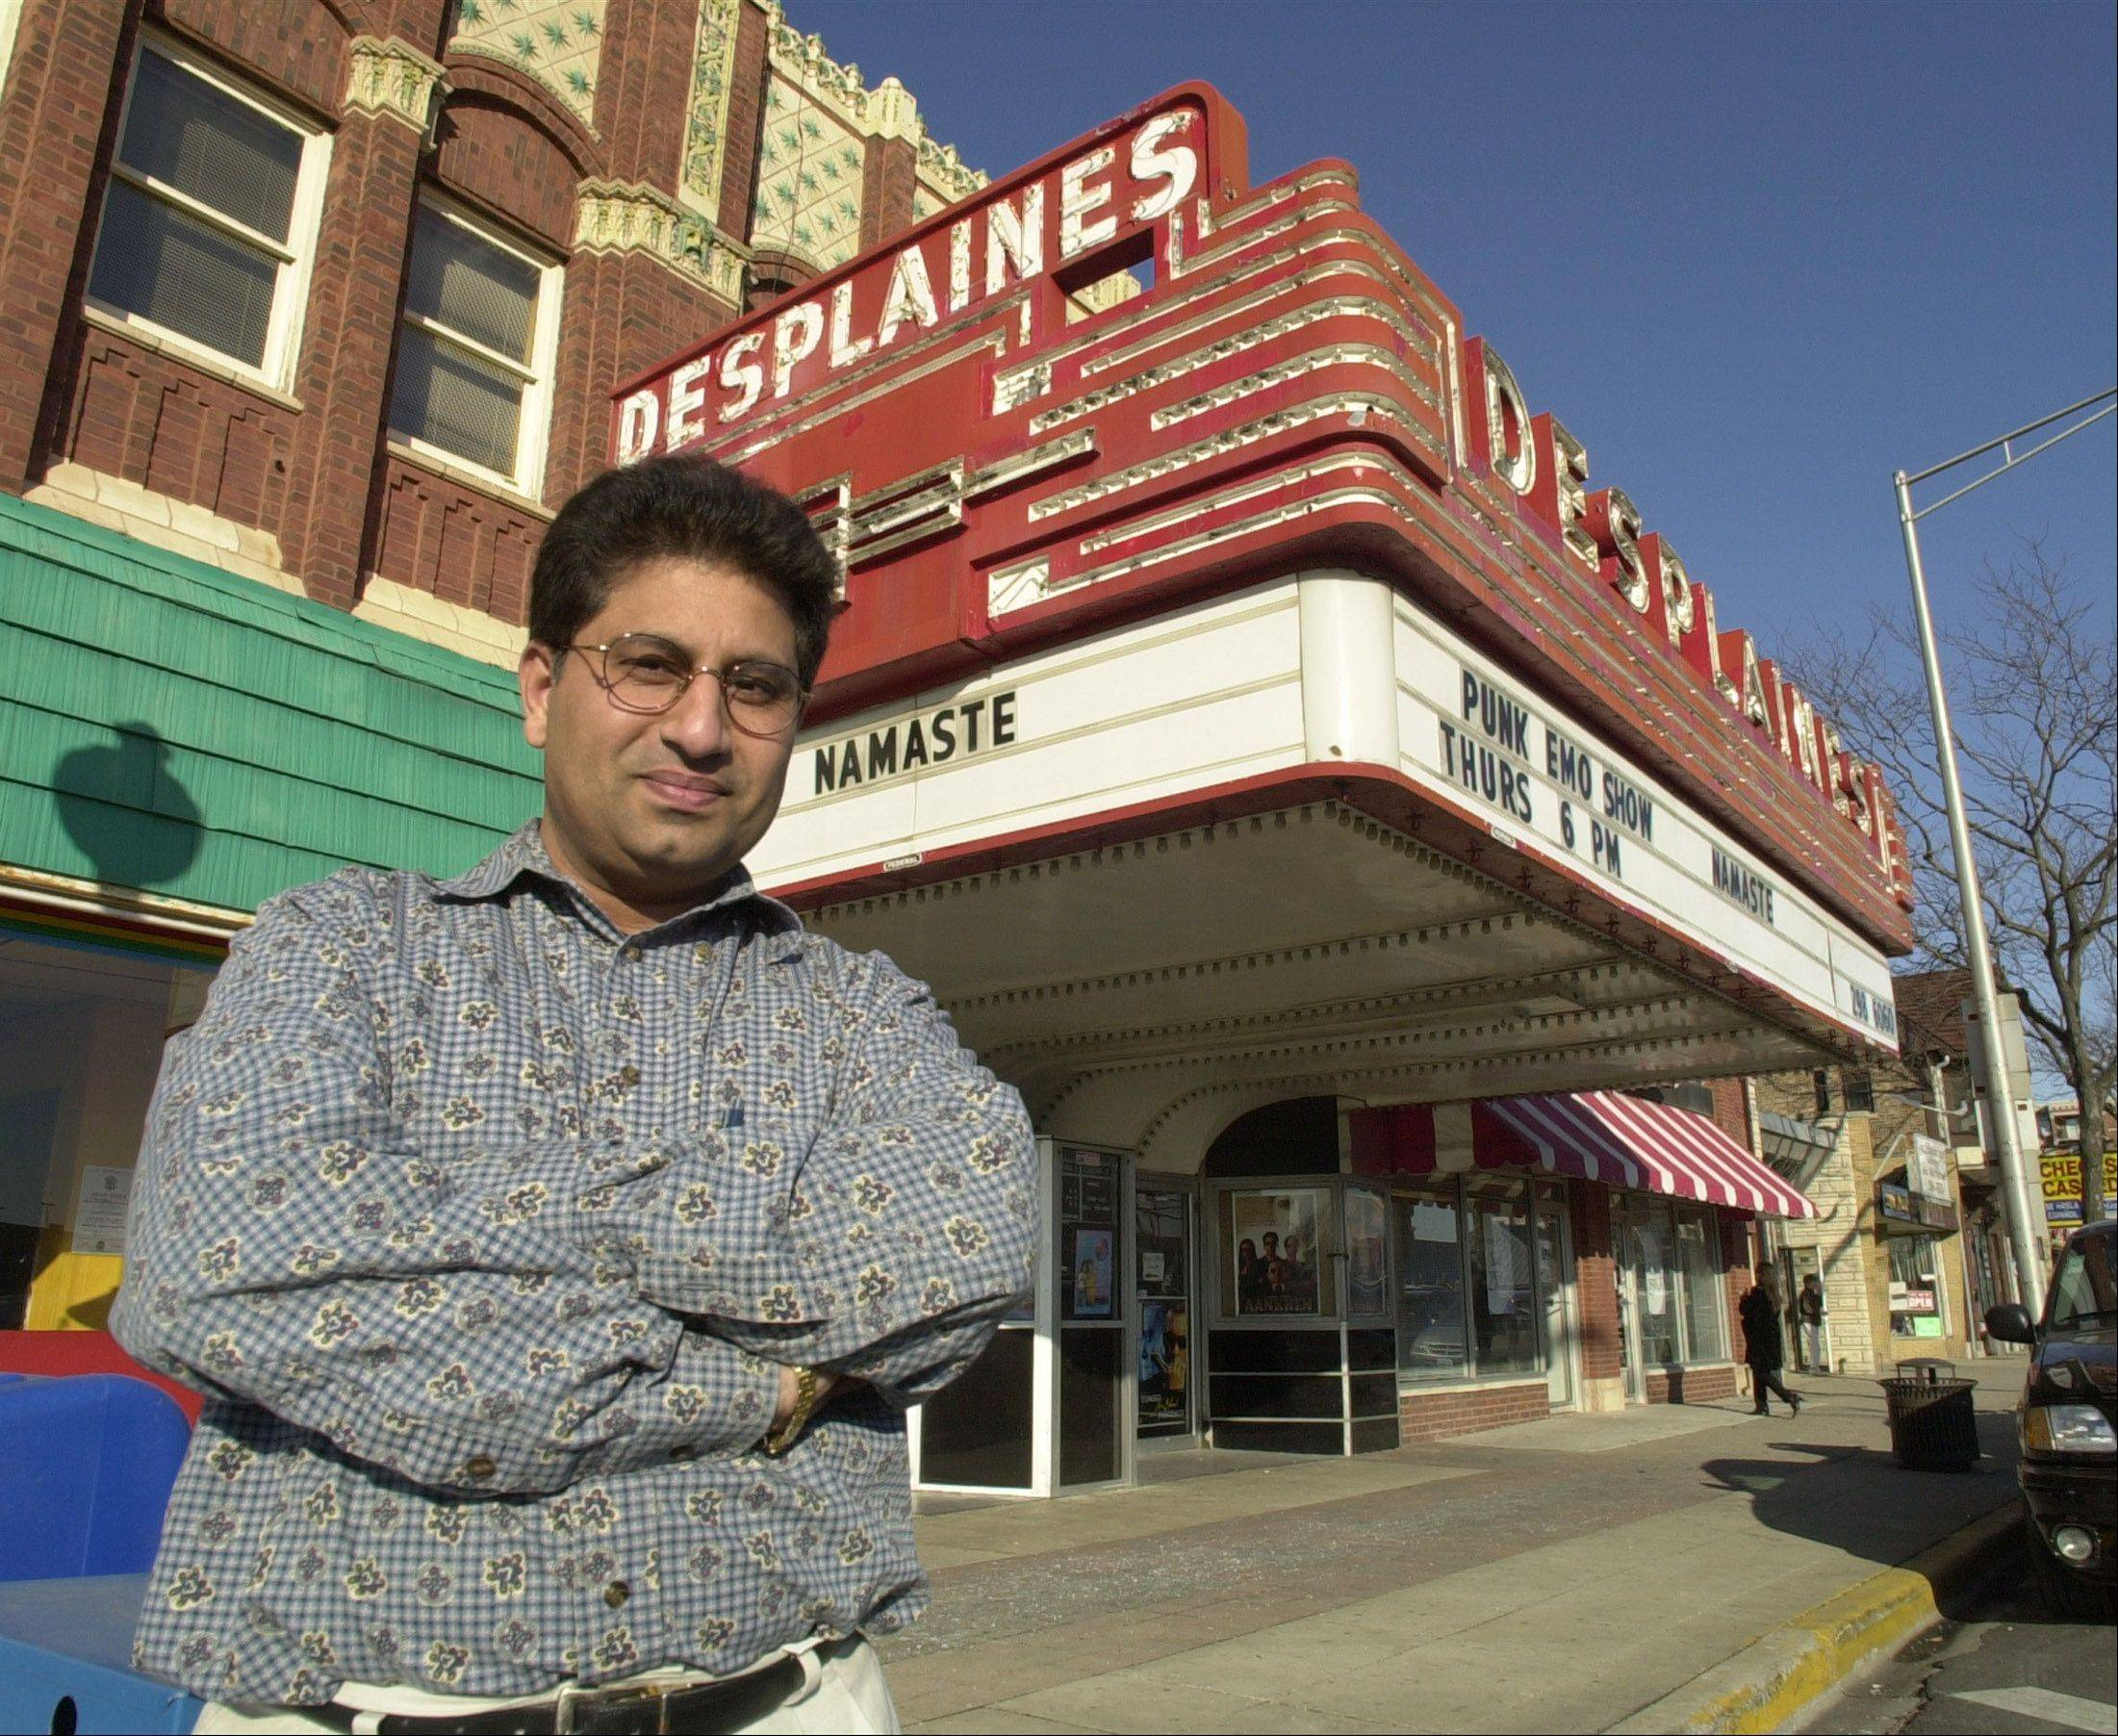 The Des Plaines Theatre was forced to close its doors this month after its owner, Dhitu Bhagwakar, failed to meet a city-imposed deadline to fix building code compliance problems.